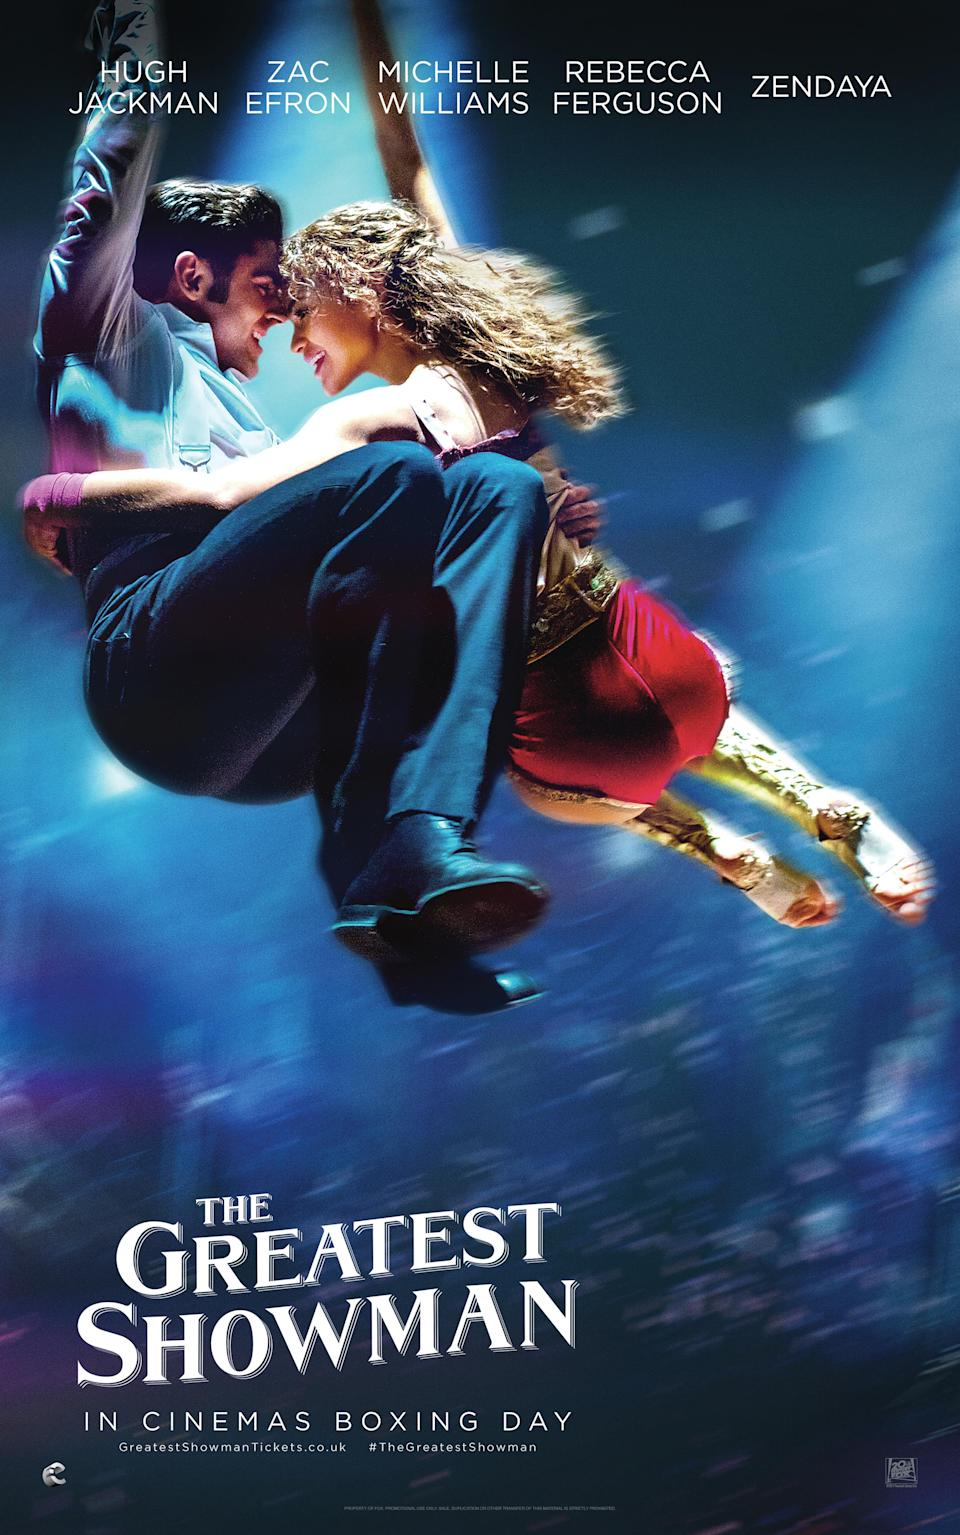 Zac and Zendaya play star-crossed lovers in the musical (20th Century Fox)